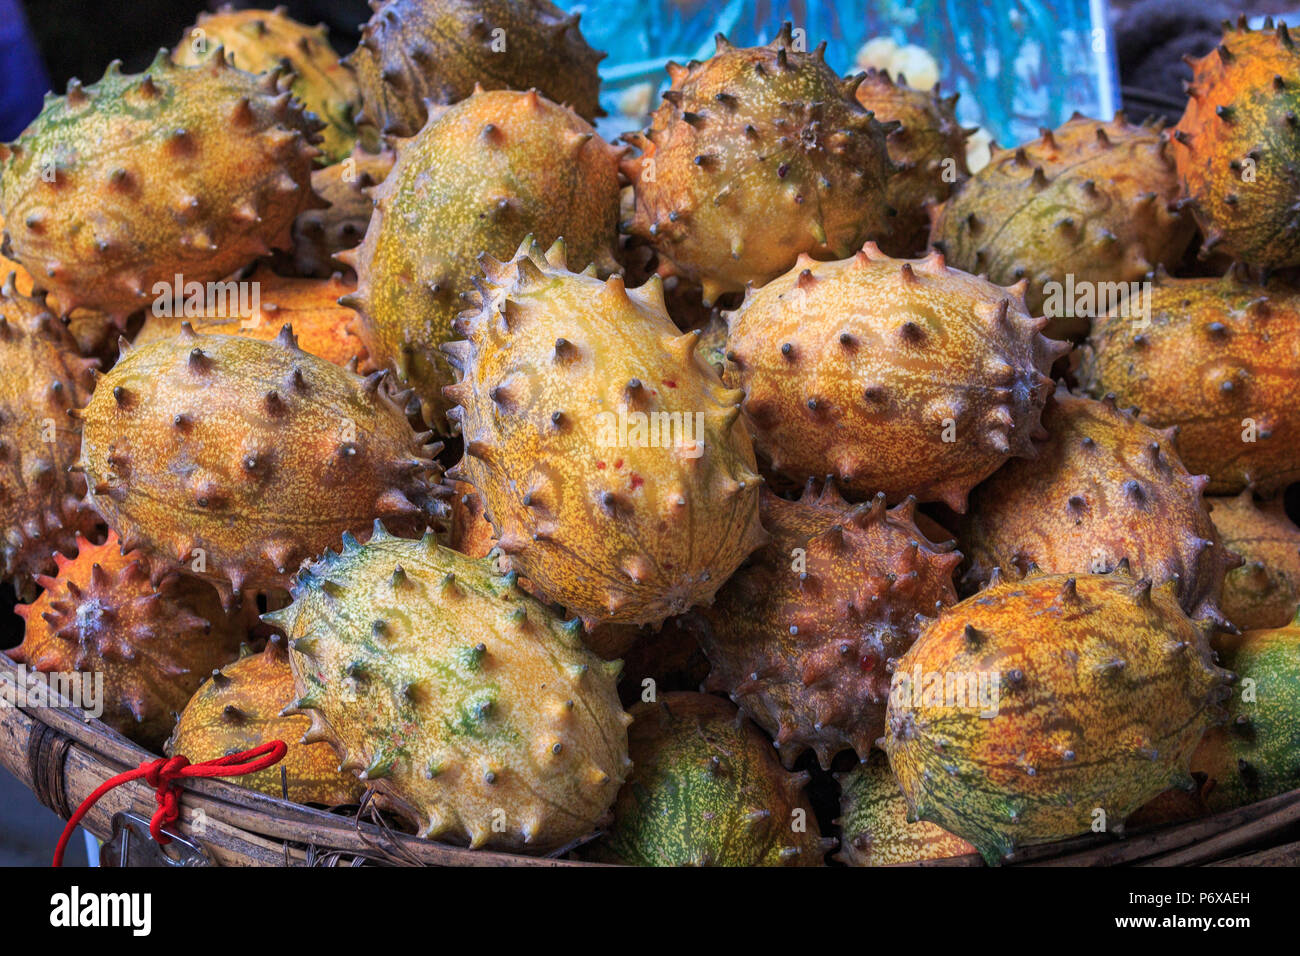 Kivano known as horned melon looks like cucumber on the counter of the Chinese market. - Stock Image